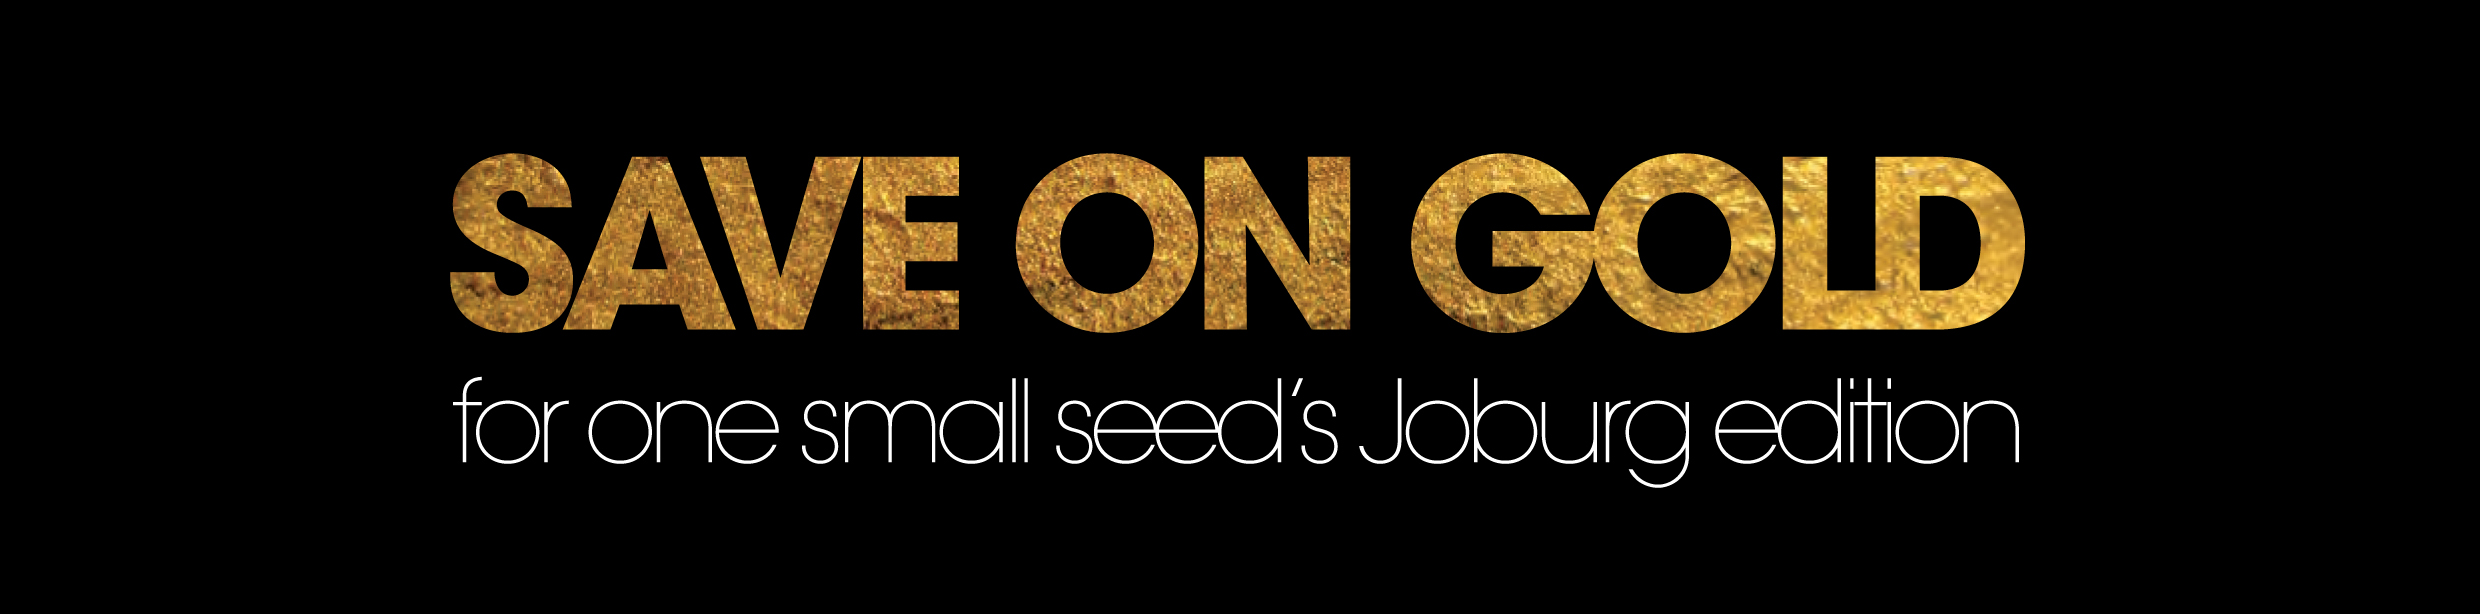 Save on Gold for one small seed's Joburg issue